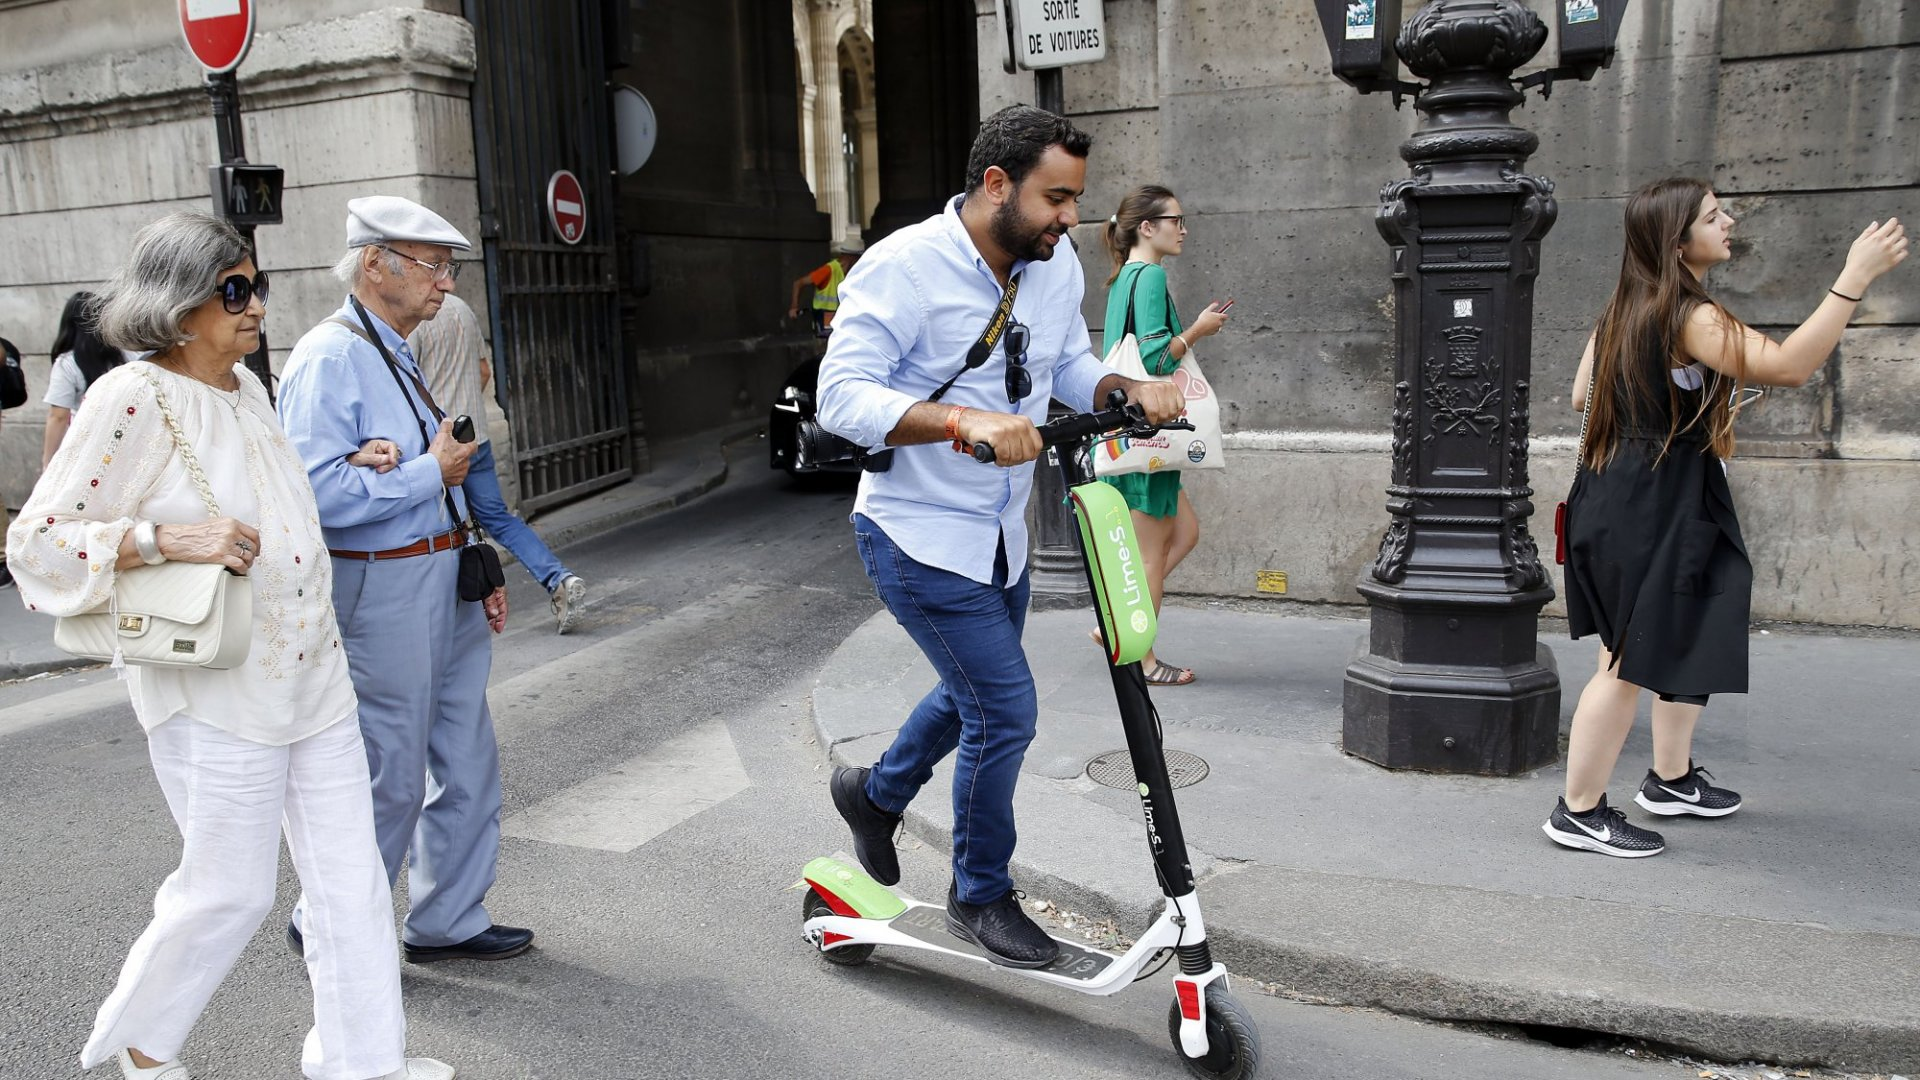 In 2018, e-scooter companies dropped large fleets without much notice to local governments in cities across America. In July, Lime launched in Paris, France.